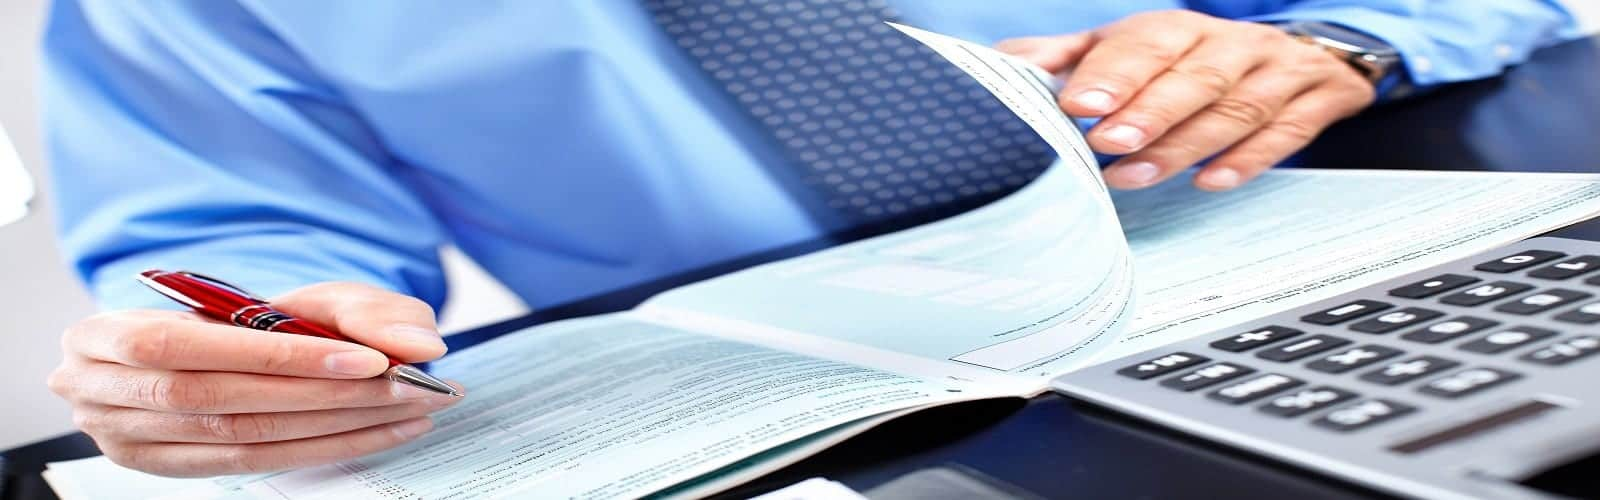 CPFA - Certificate Program in Financial Accounting Training